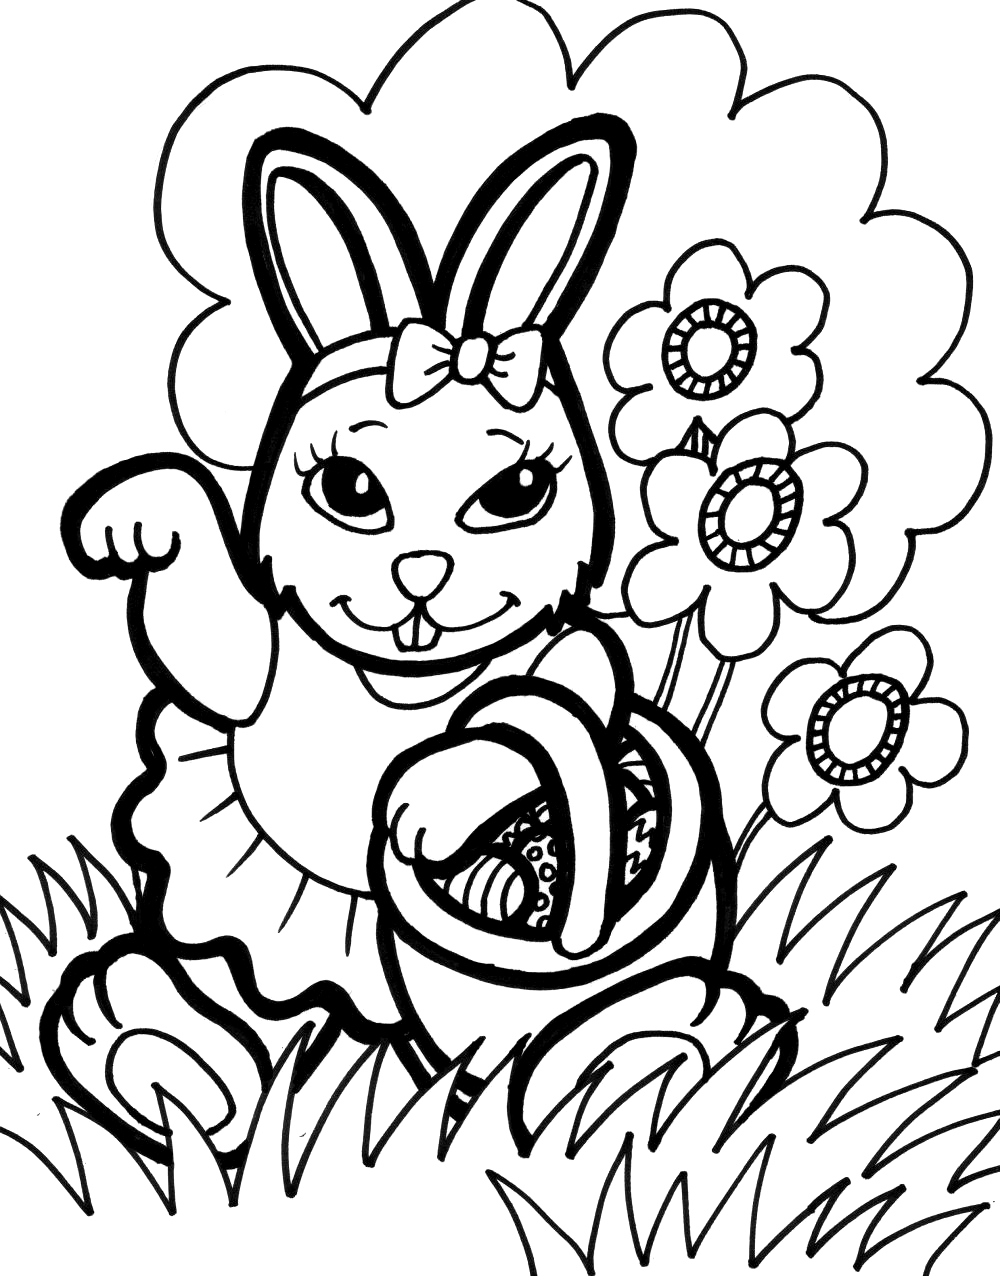 rabbit images for colouring free rabbit coloring pages colouring images for rabbit